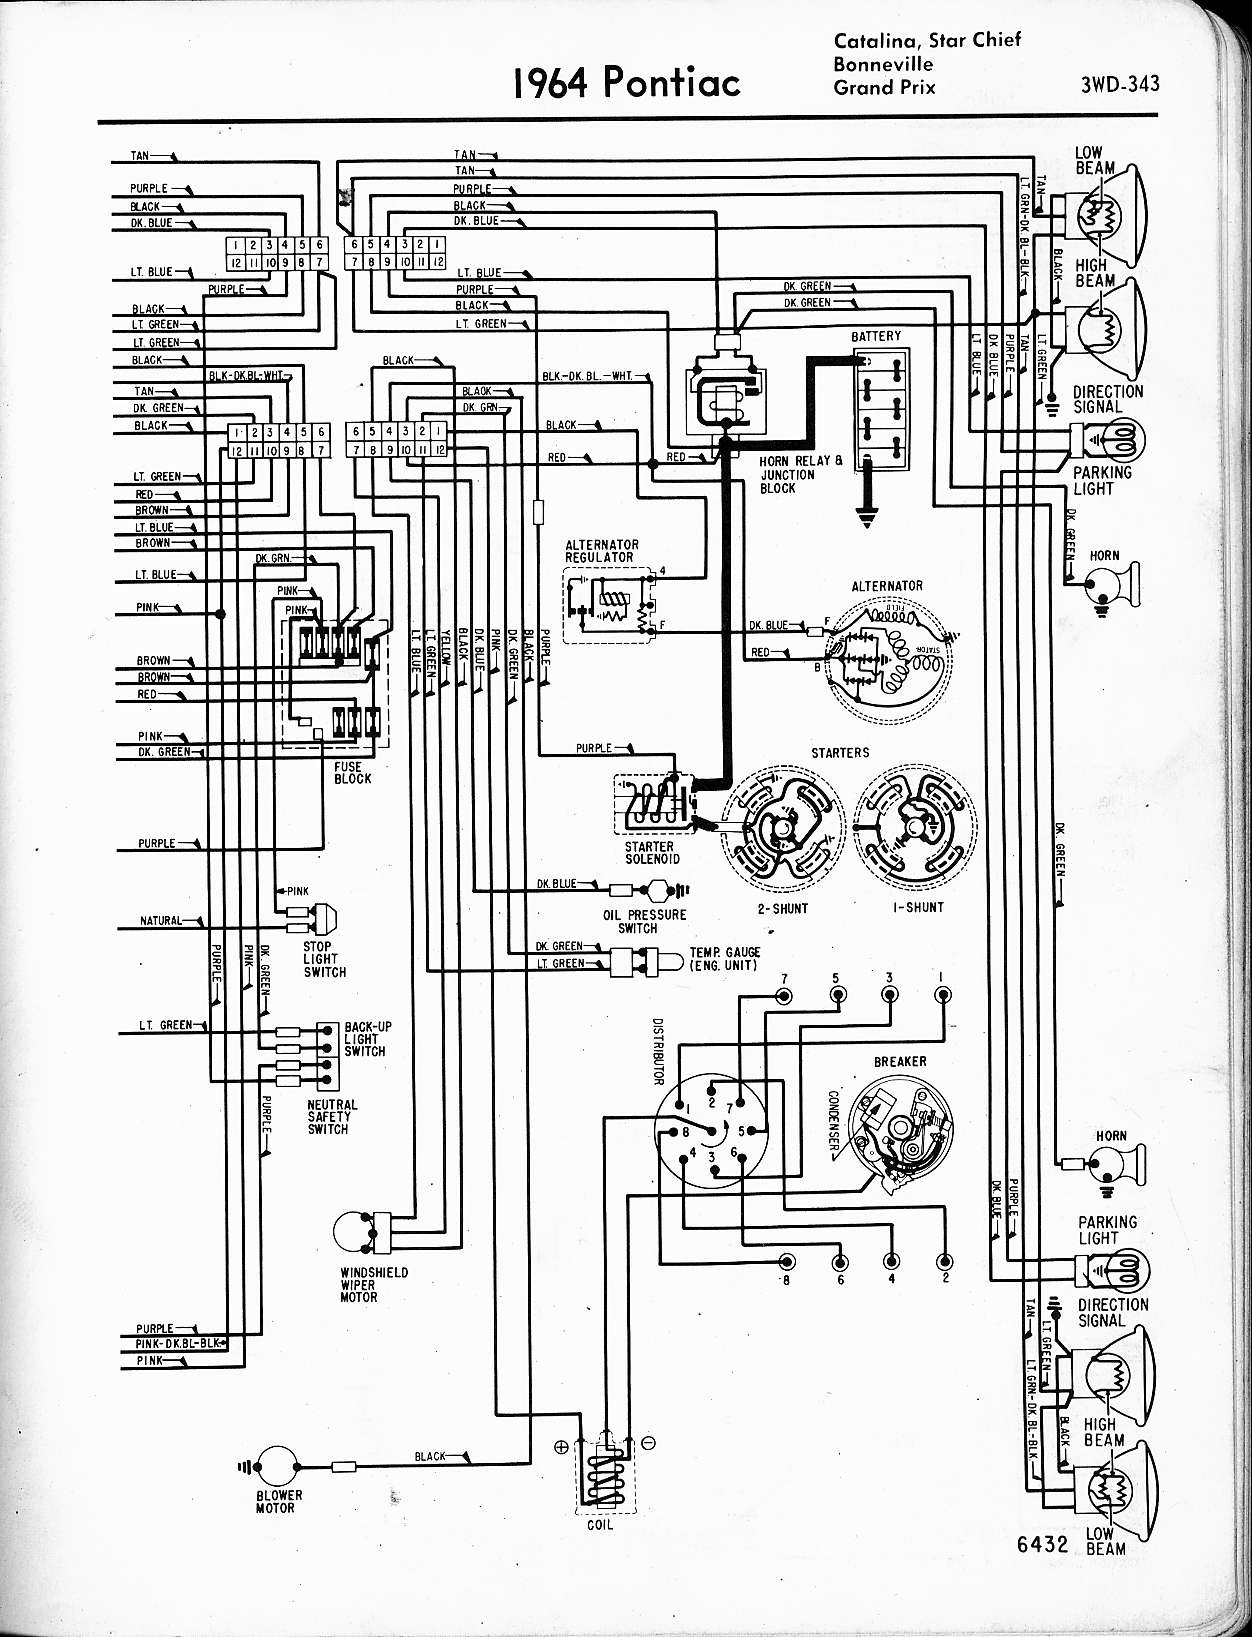 Pontiac Wiring 1957 1965 Diagram 2 Switches Harness 1964 Catalina Star Chief Bonneville Grand Prix Right Page